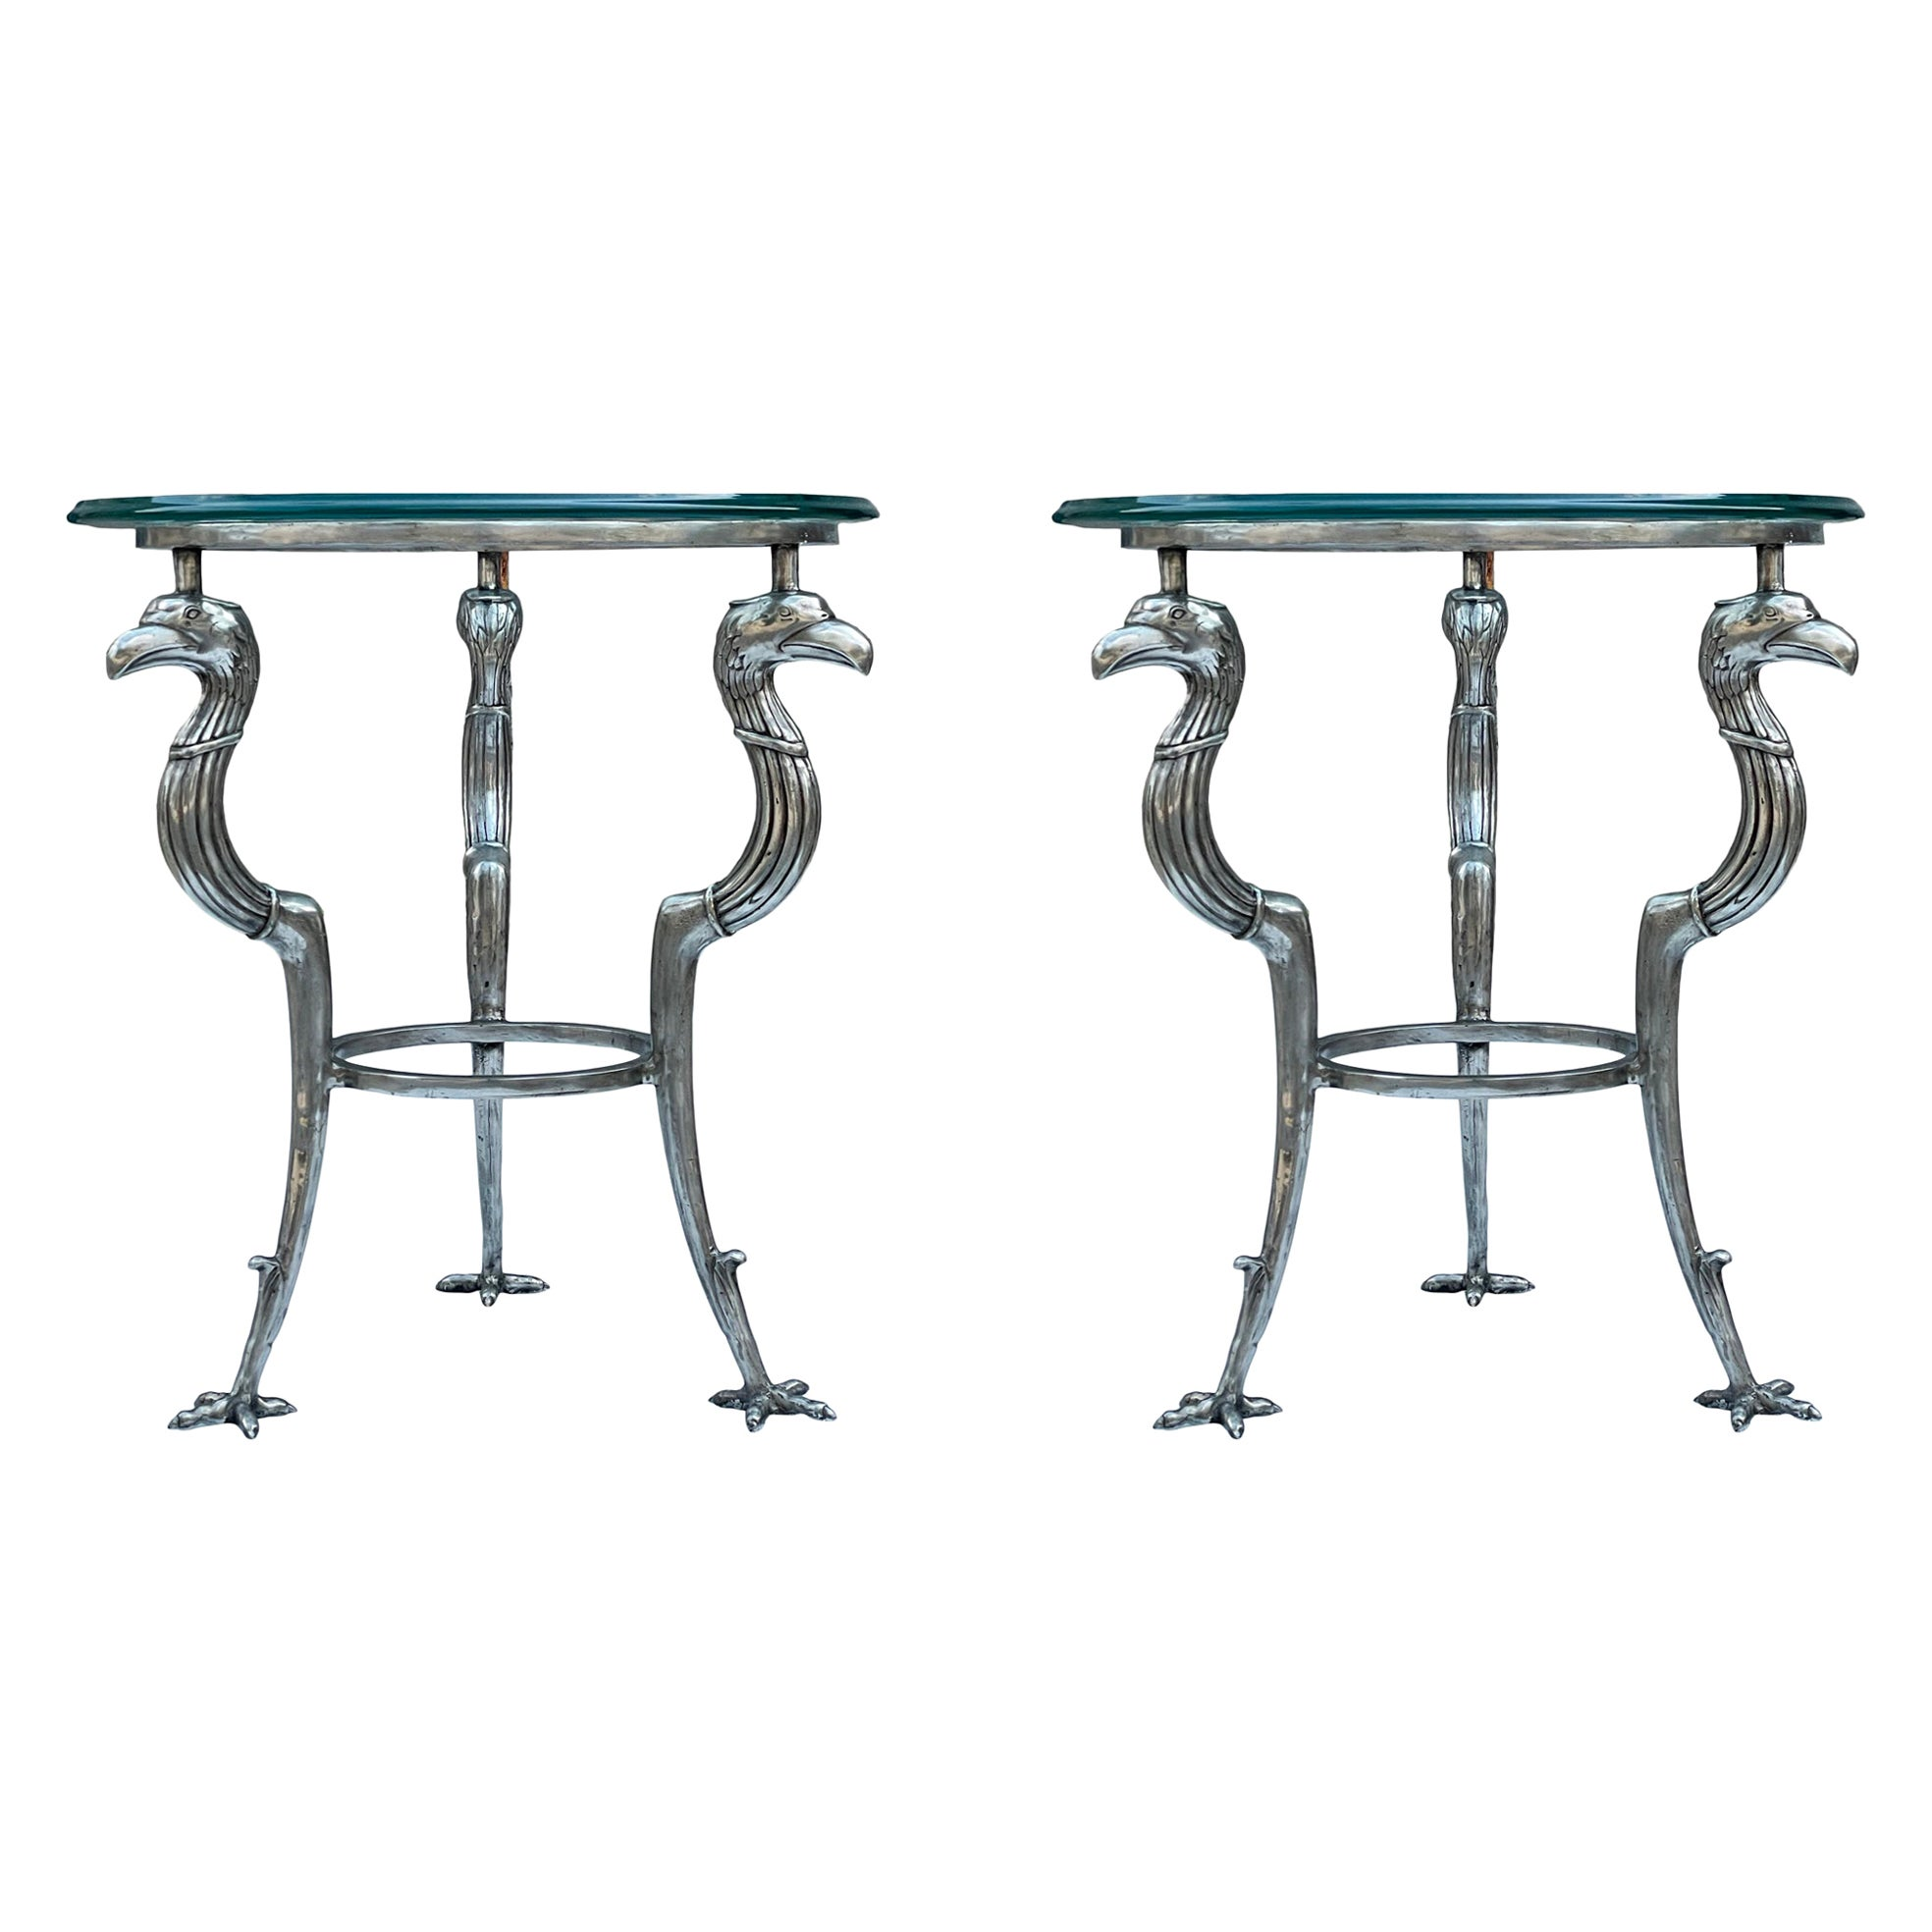 Matching Pair of Hollywood Regency Glass & Brass End Tables by Maitland Smith